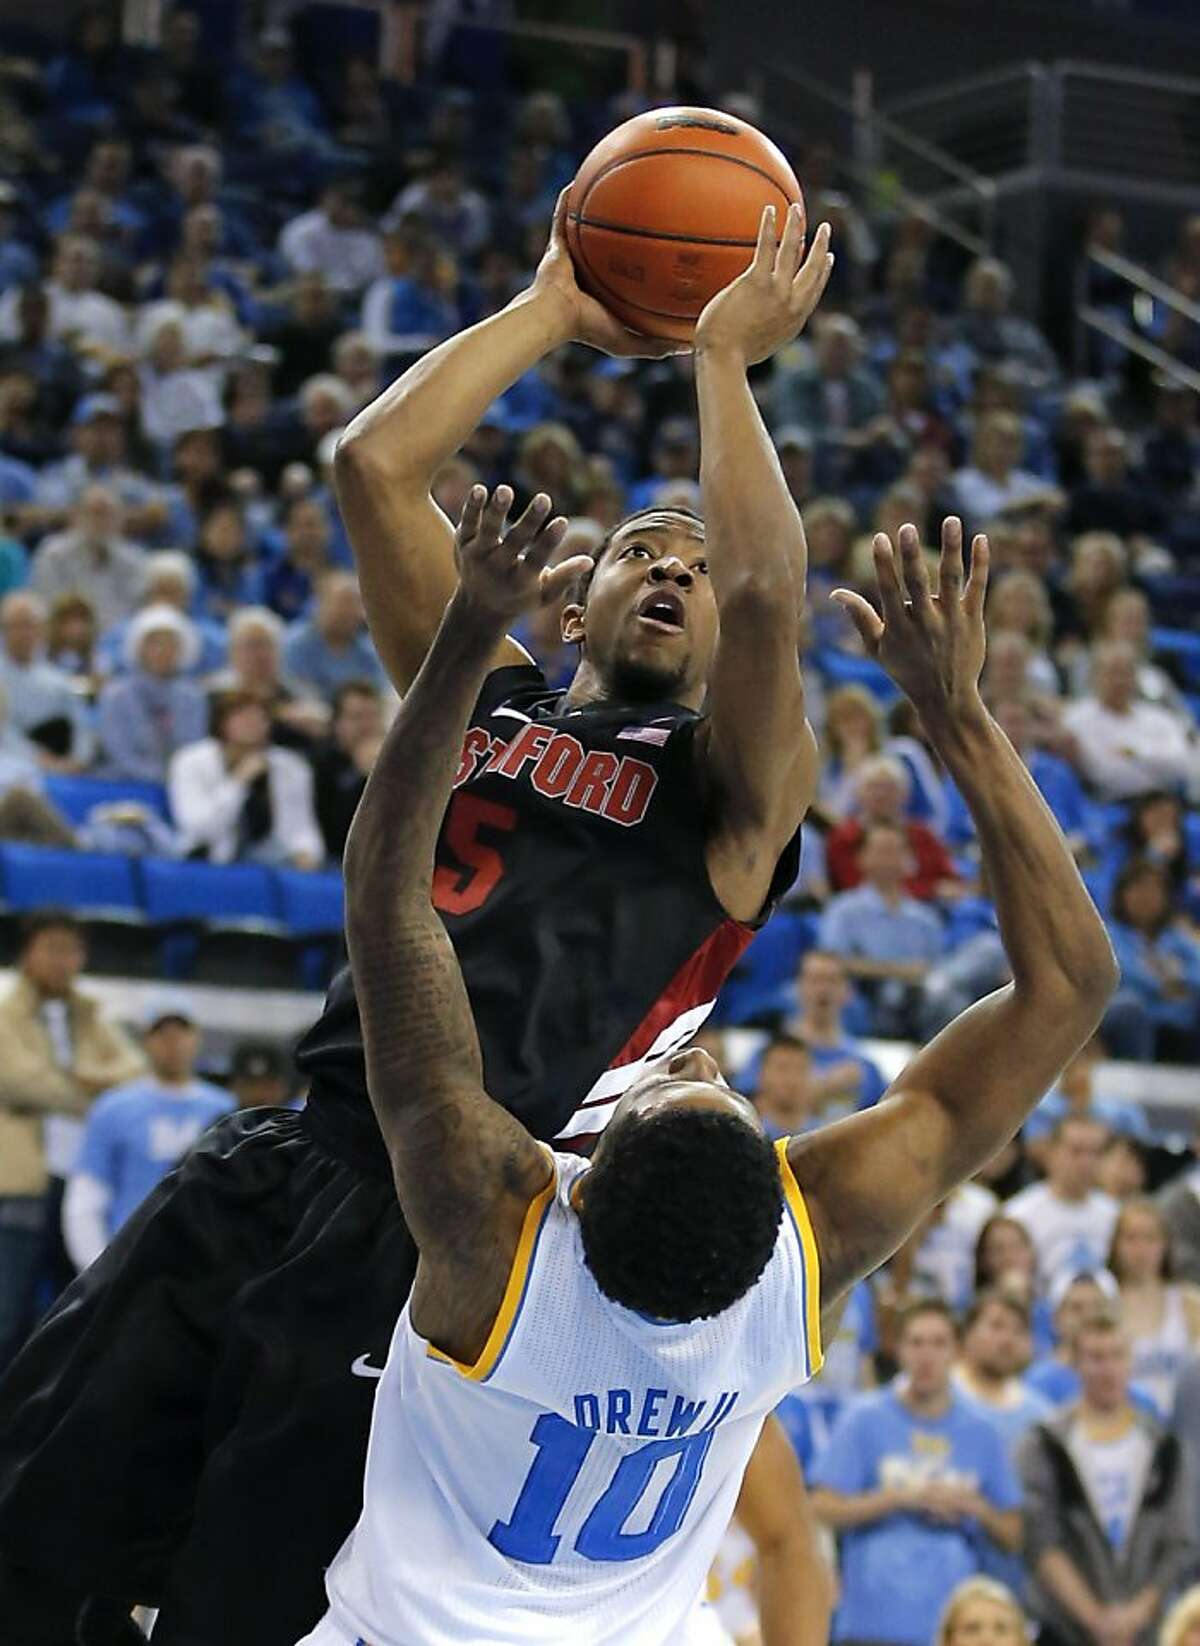 Stanford's Chasson Randle, top, shoots over UCLA's Larry Drew II during the first half of an NCAA college basketball game in Los Angeles, Saturday, Jan. 5, 2013. (AP Photo/Jae C. Hong)